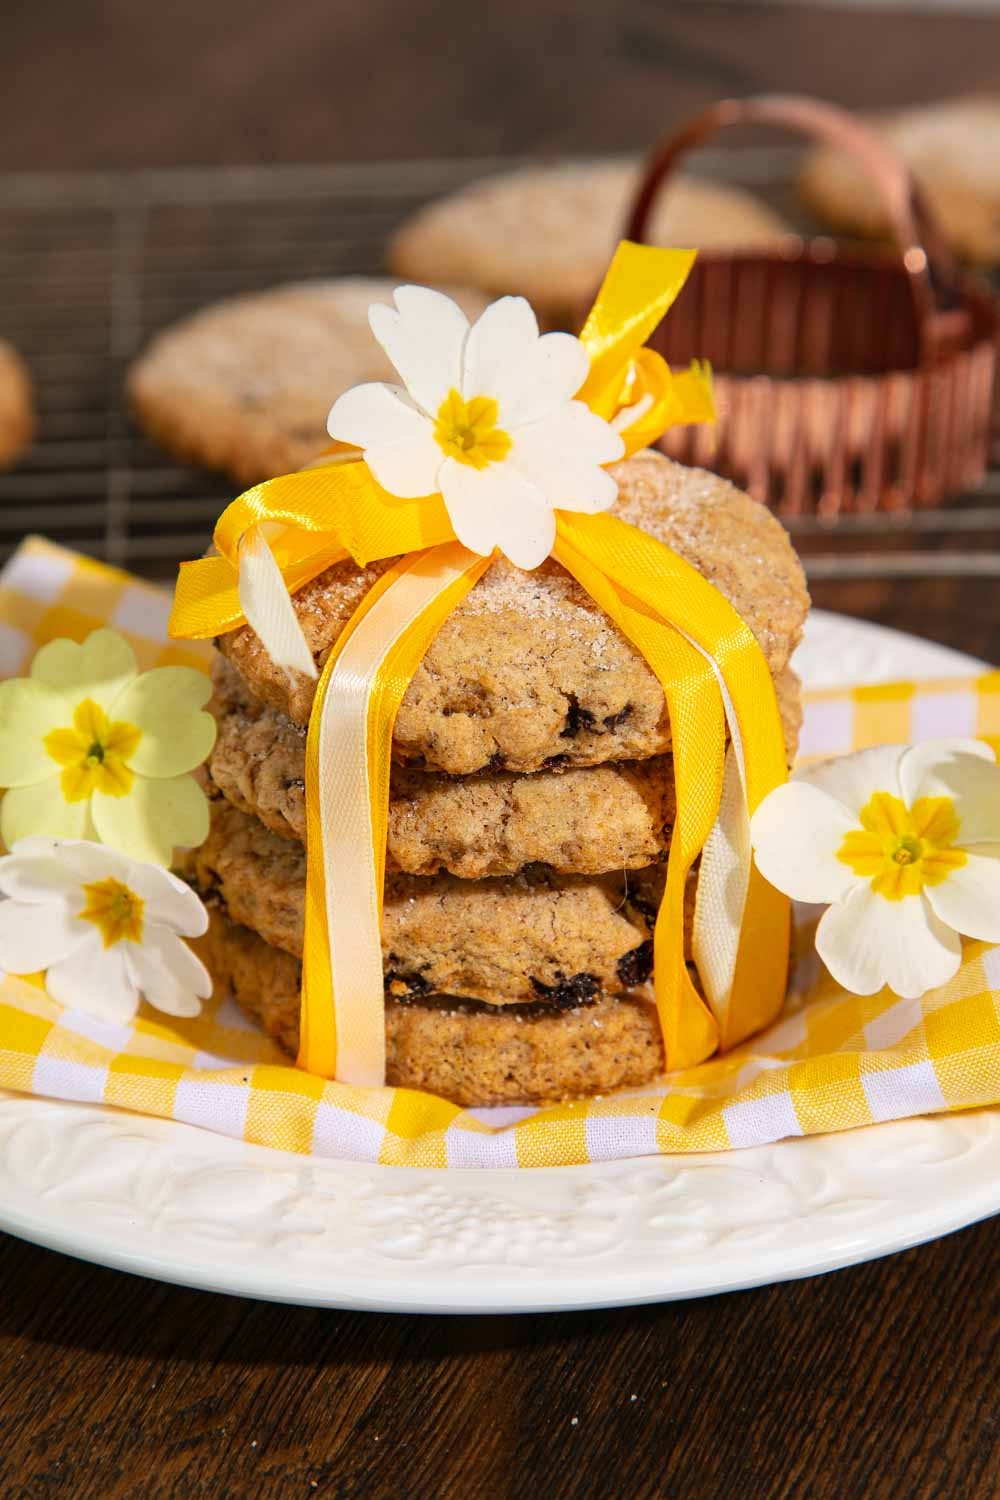 A stack of vegan Easter biscuits tied with yellow ribbons and topped with fresh primrose flowers.